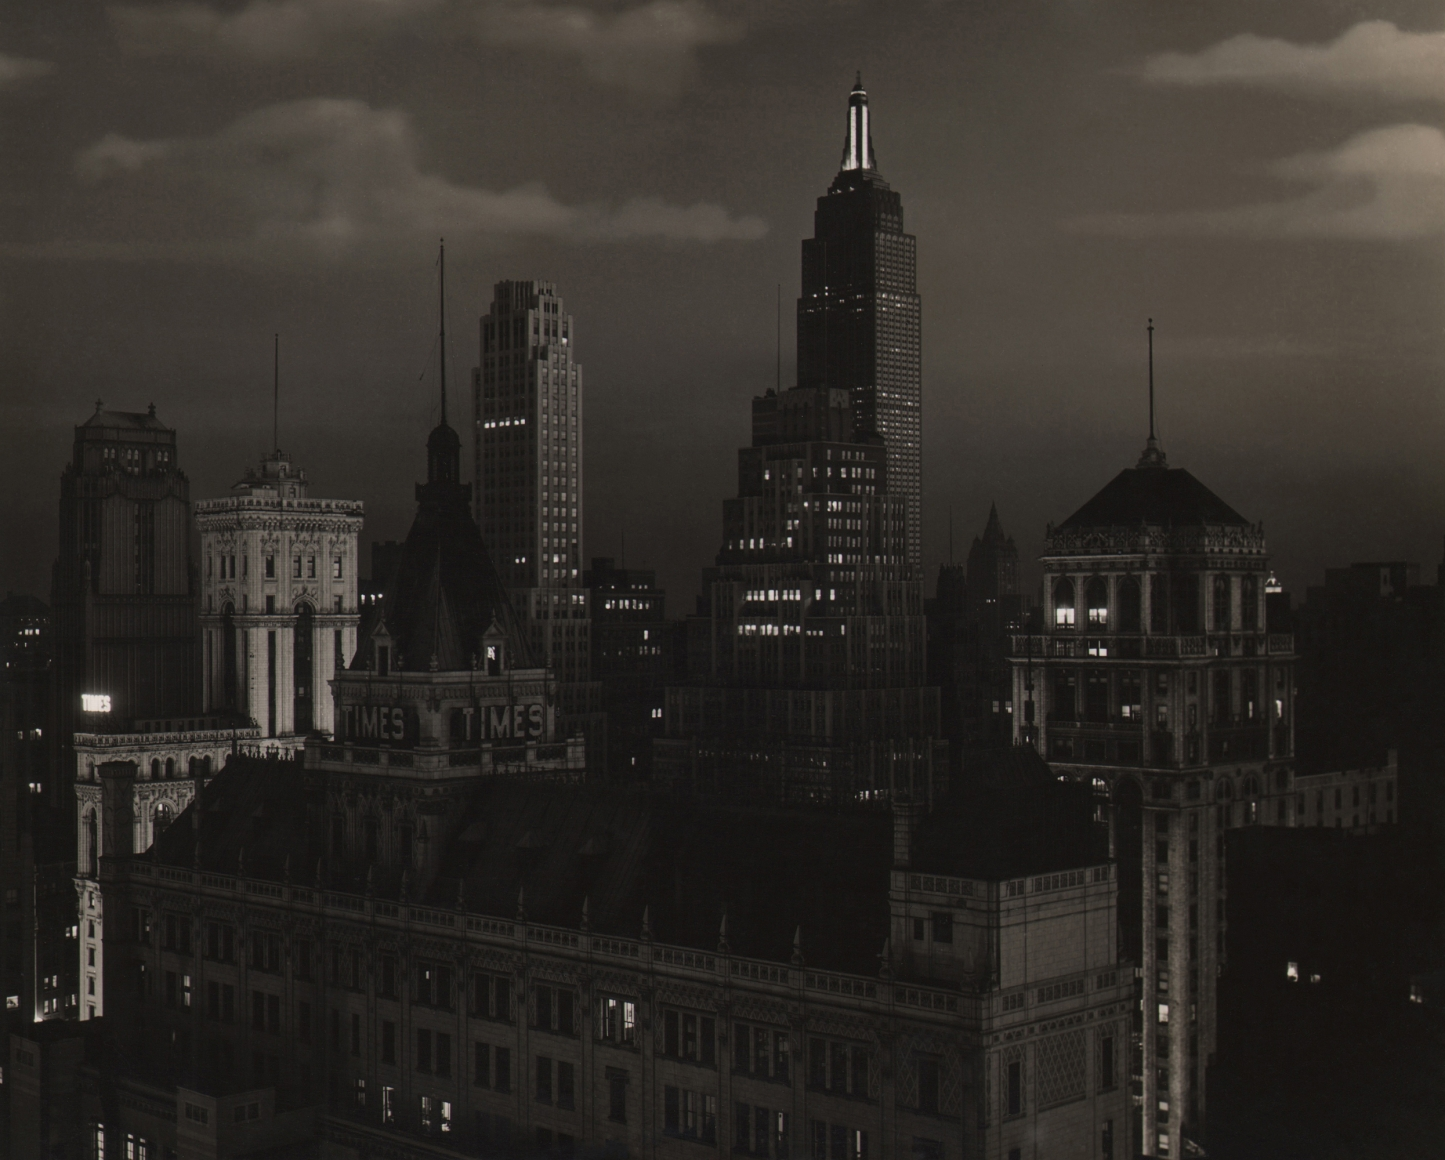 Paul J. Woolf, Times Building Looking South, c. 1935. Night time cityscape with partly cloudy skies.